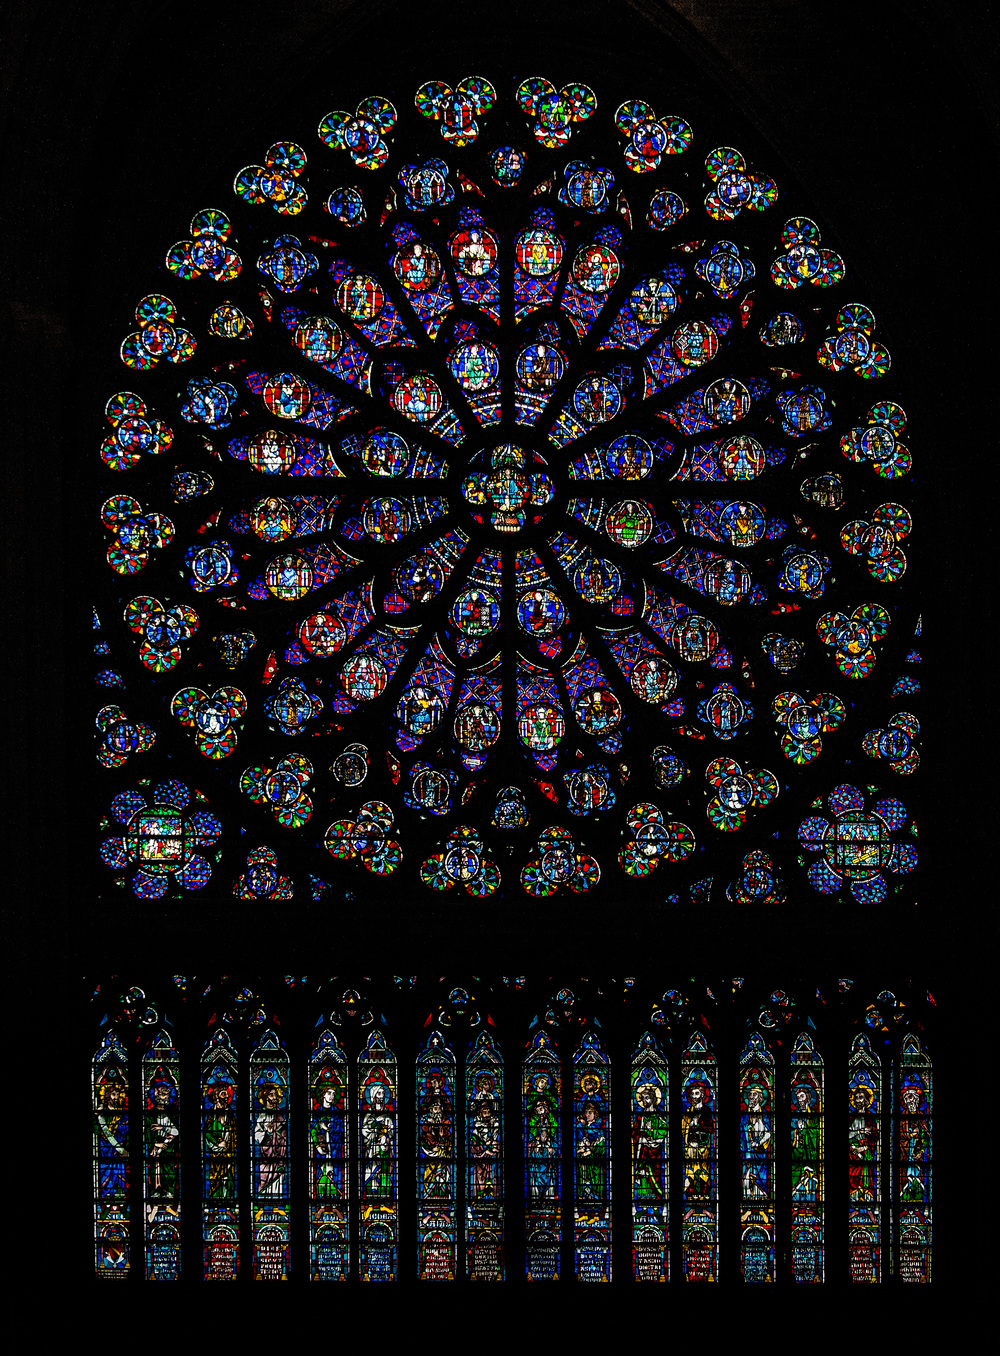 Rose window (1 of 1).jpg